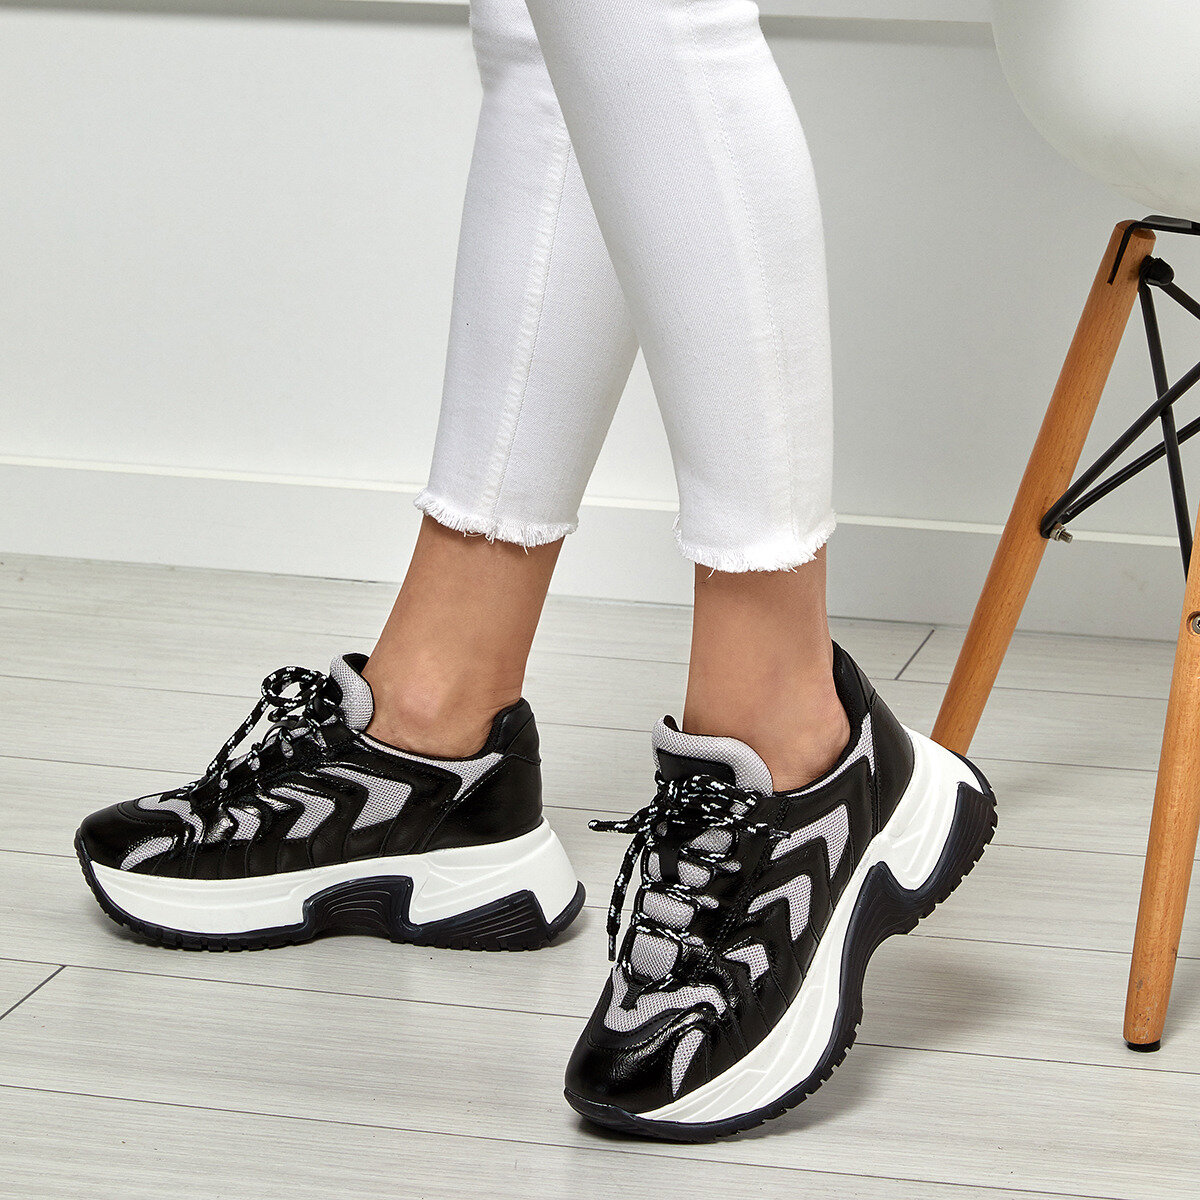 FLO 19SF-2056 Black Women 'S Sneaker Shoes BUTIGO